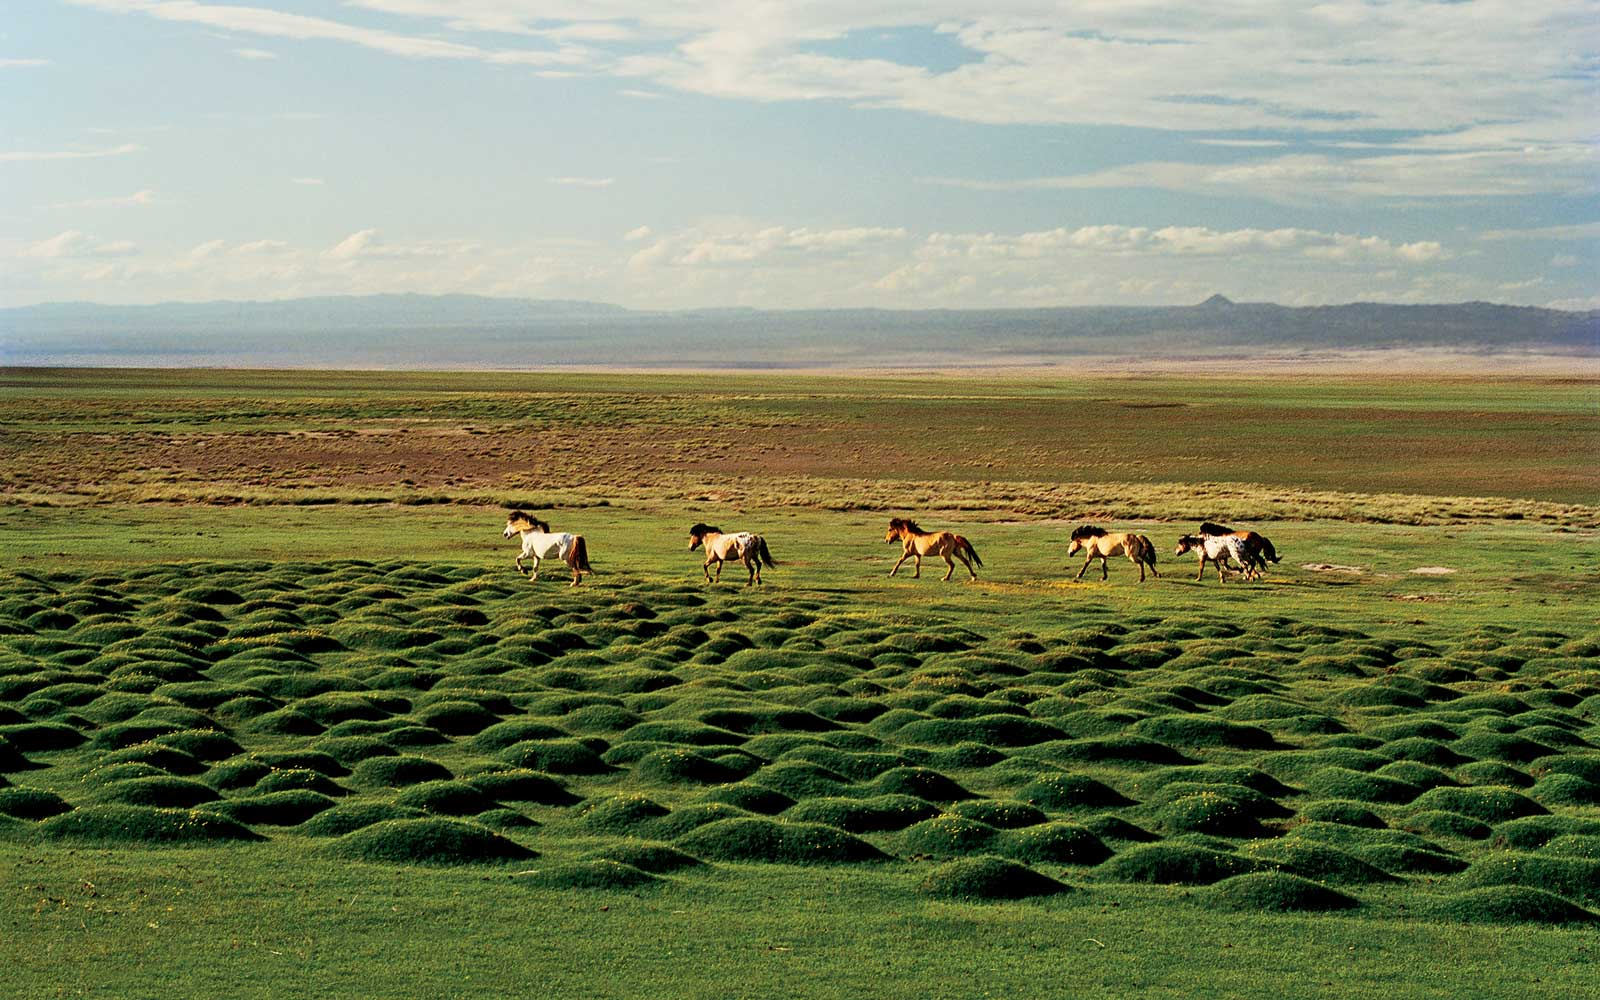 Trek Through Rural Mongolia